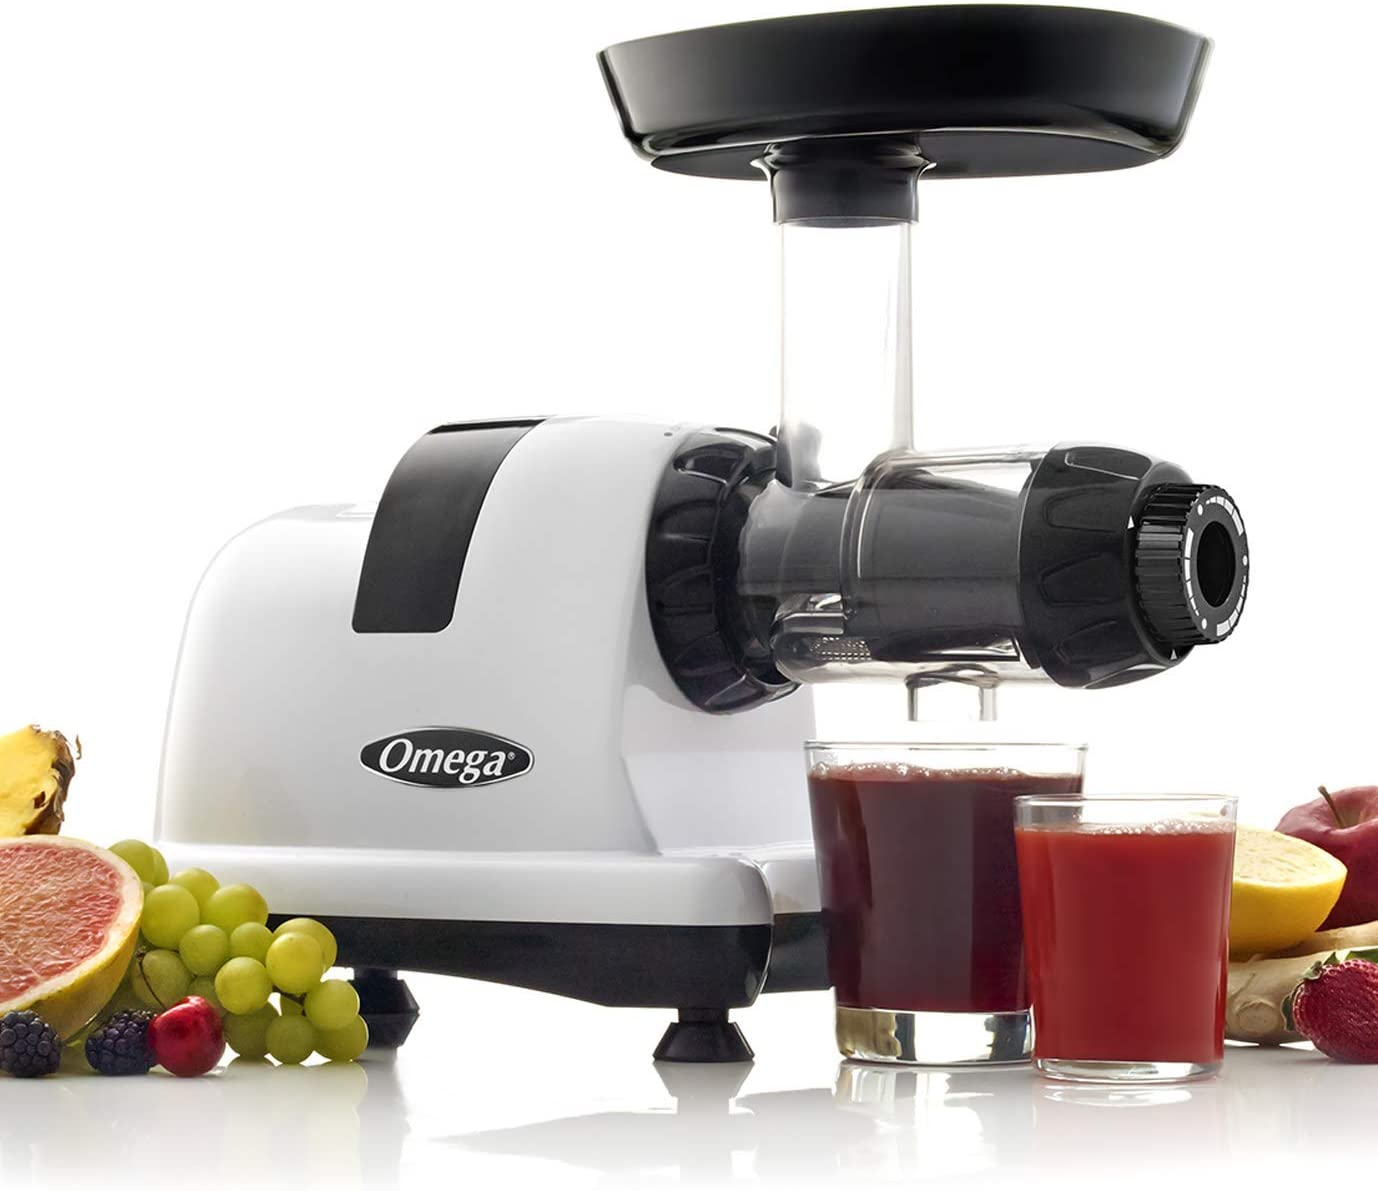 Omega J8006HDS Nutrition Center Quiet Dual-Stage Slow Speed Masticating Juicer Makes Fruit and Vegetable 80 Revolutions per Minute High Juice, 200-Watt, Silver (Renewed)